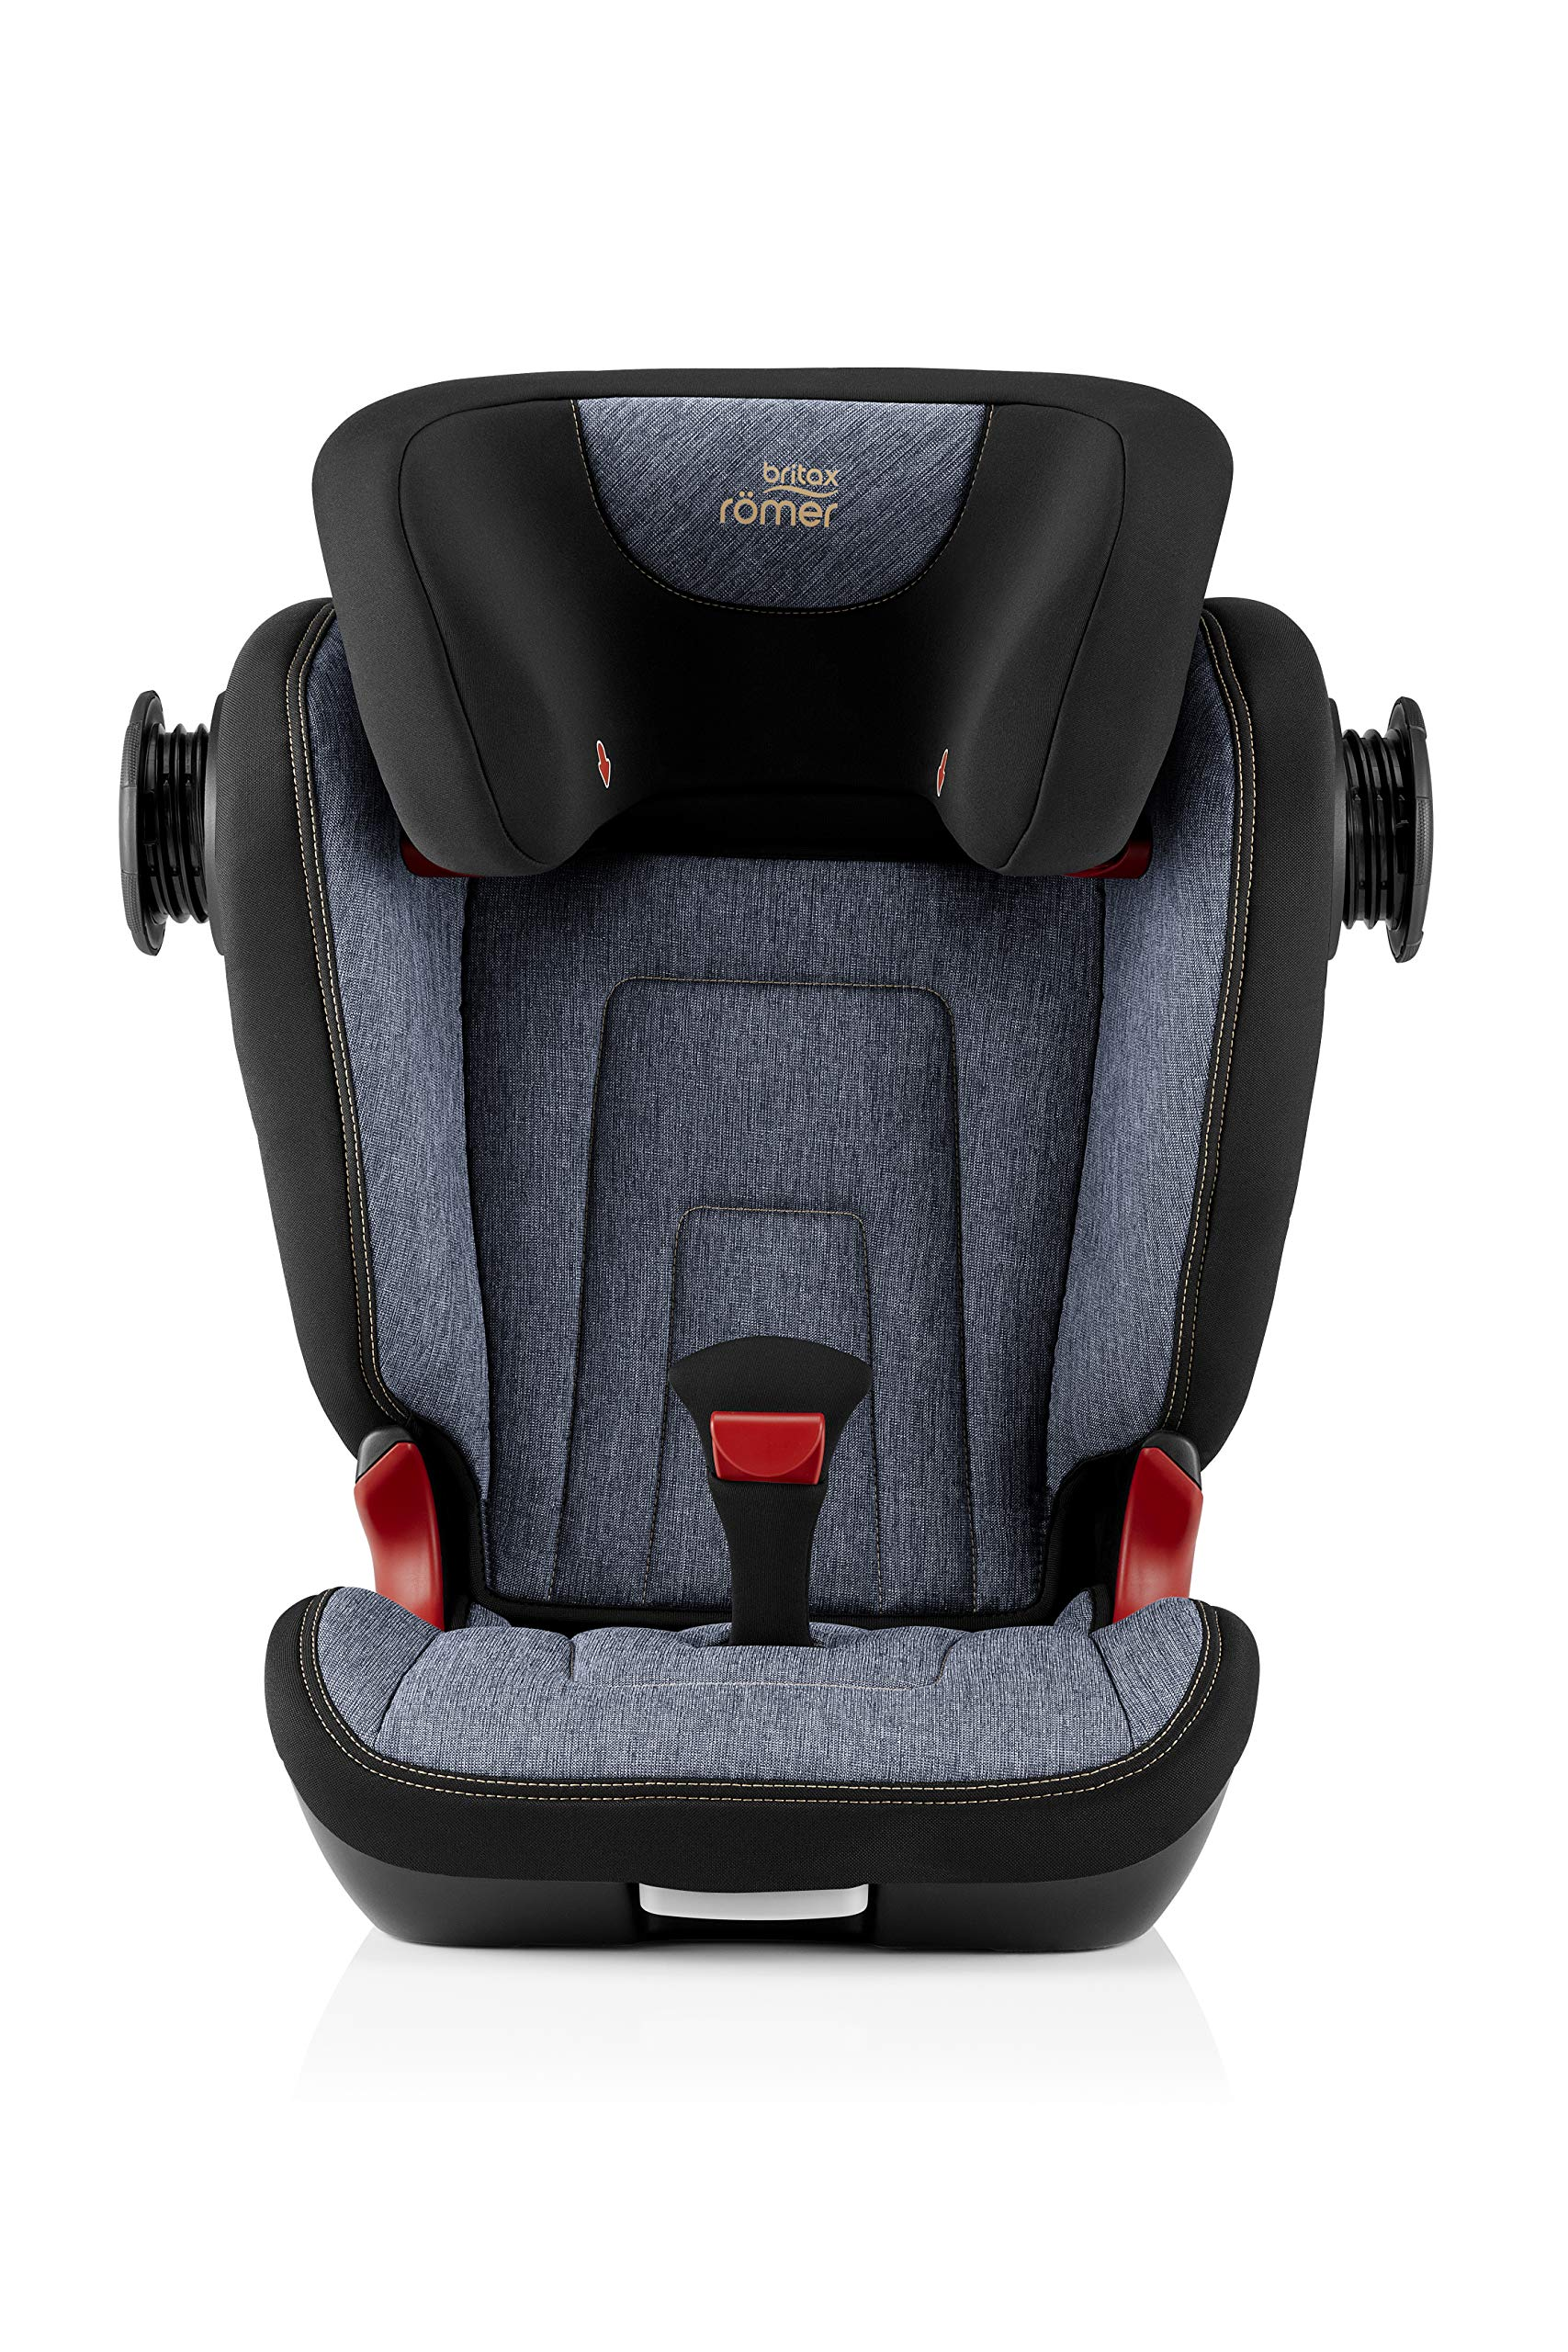 Britax Römer KIDFIX² S Group 2-3 (15-36kg) Car Seat - Blue Marble Britax Römer Advanced side impact protection - sict offers superior protection to your child in the event of a side collision. reducing impact forces by minimising the distance between the car and the car seat. Secure guard - helps to protect your child's delicate abdominal area by adding an extra - a 4th - contact point to the 3-point seat belt. High back booster - protects your child in 3 ways: provides head to hip protection; belt guides provide correct positioning of the seat belt and the padded headrest provides safety and comfort. 6